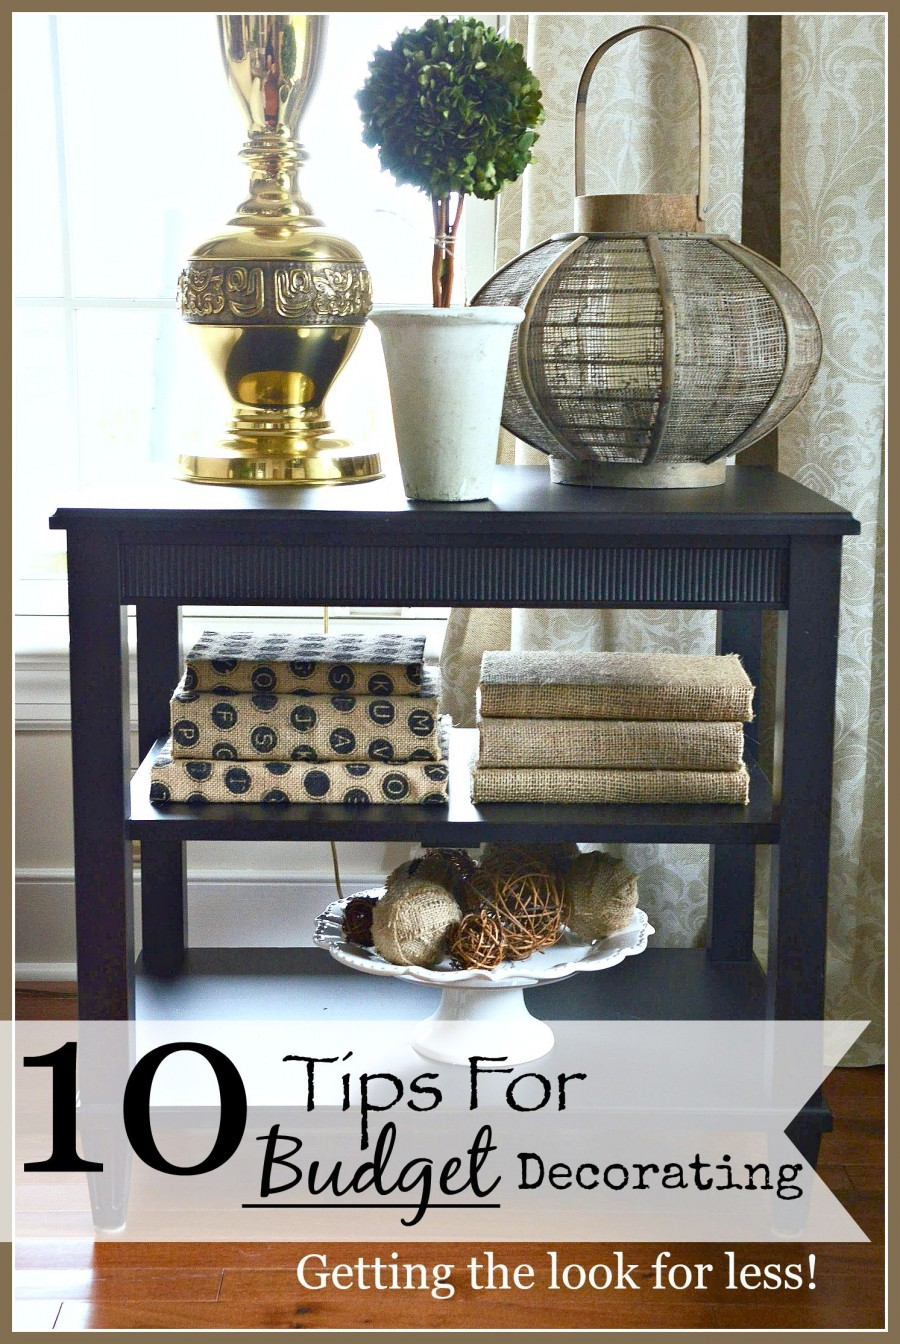 10 tips for decorating on a budget stonegable - Decor for small living room on budget ...